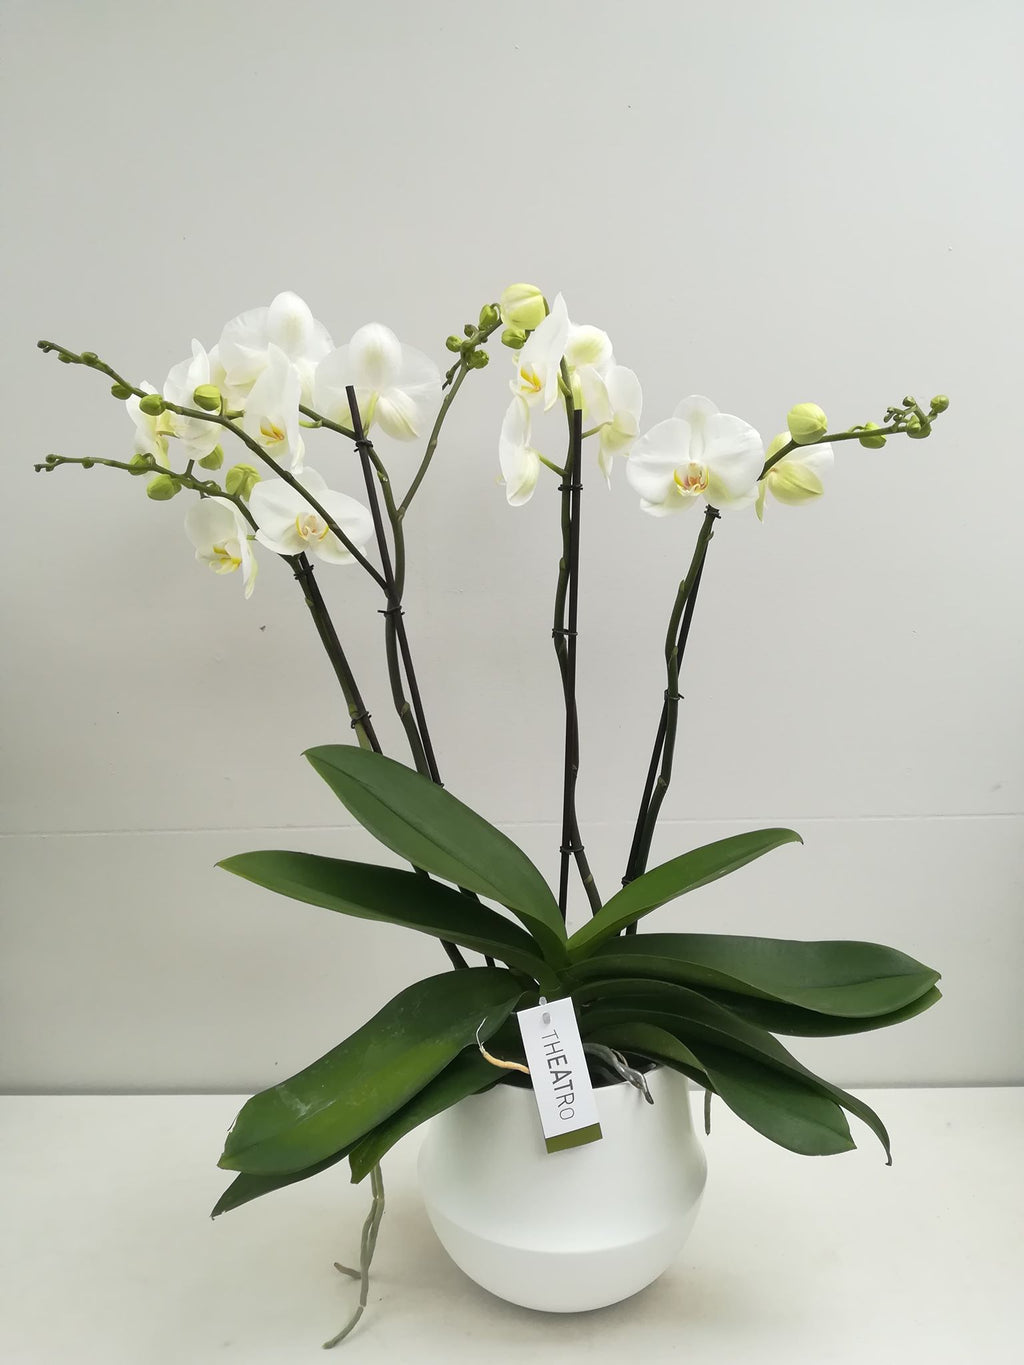 Kamerplant - witte theatro-orchidee (4 takken) in witte pot